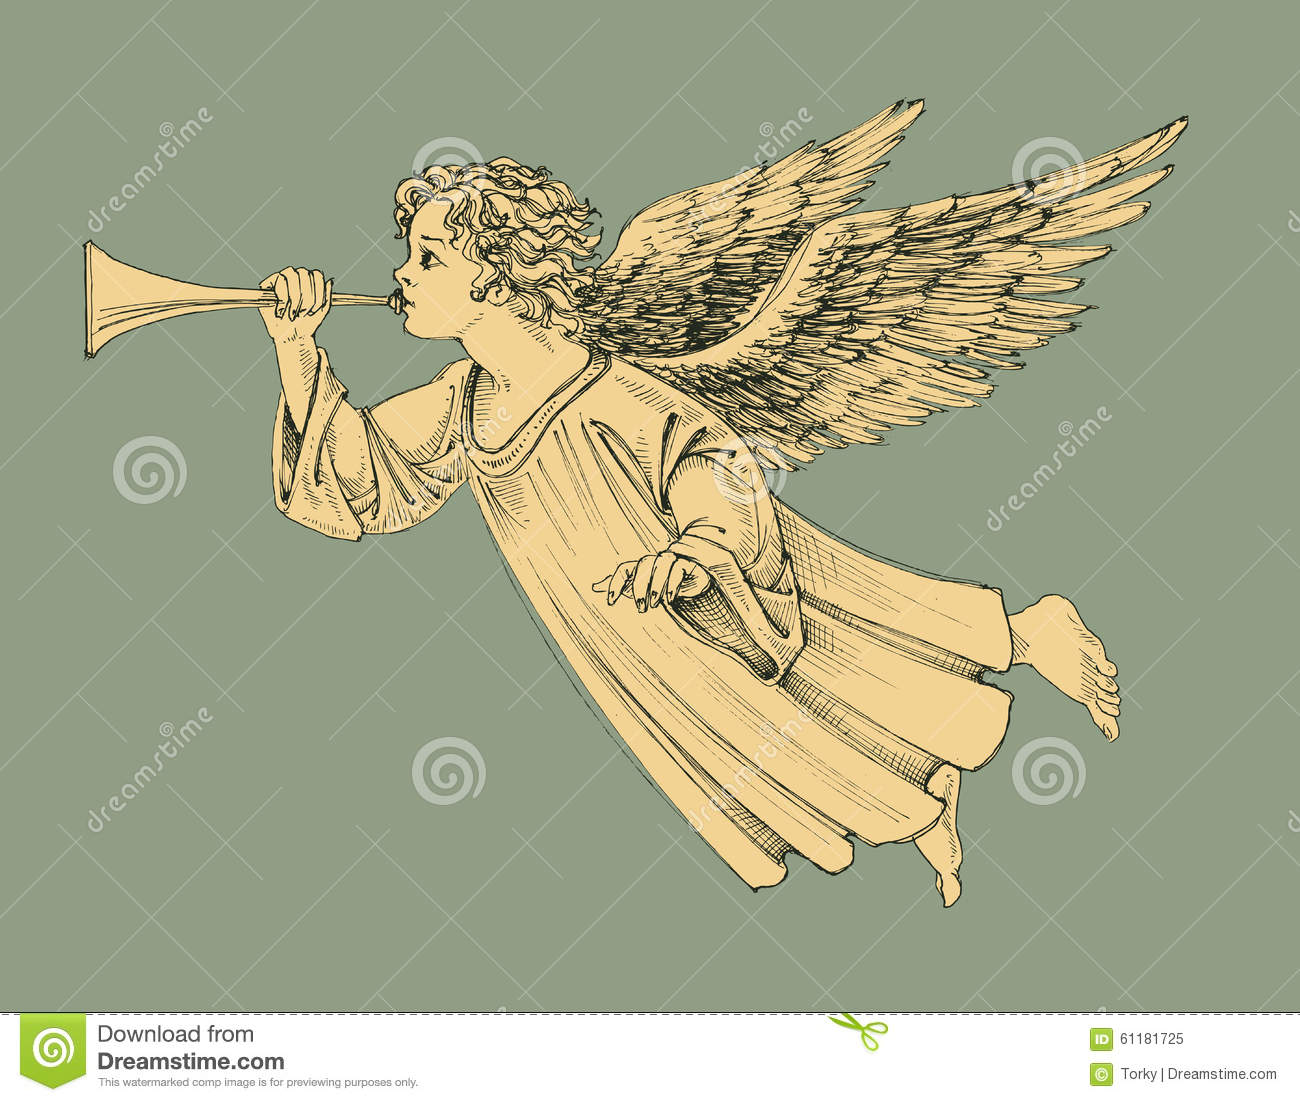 Retro style Christmas angel hand drawn design element for Christmas projects